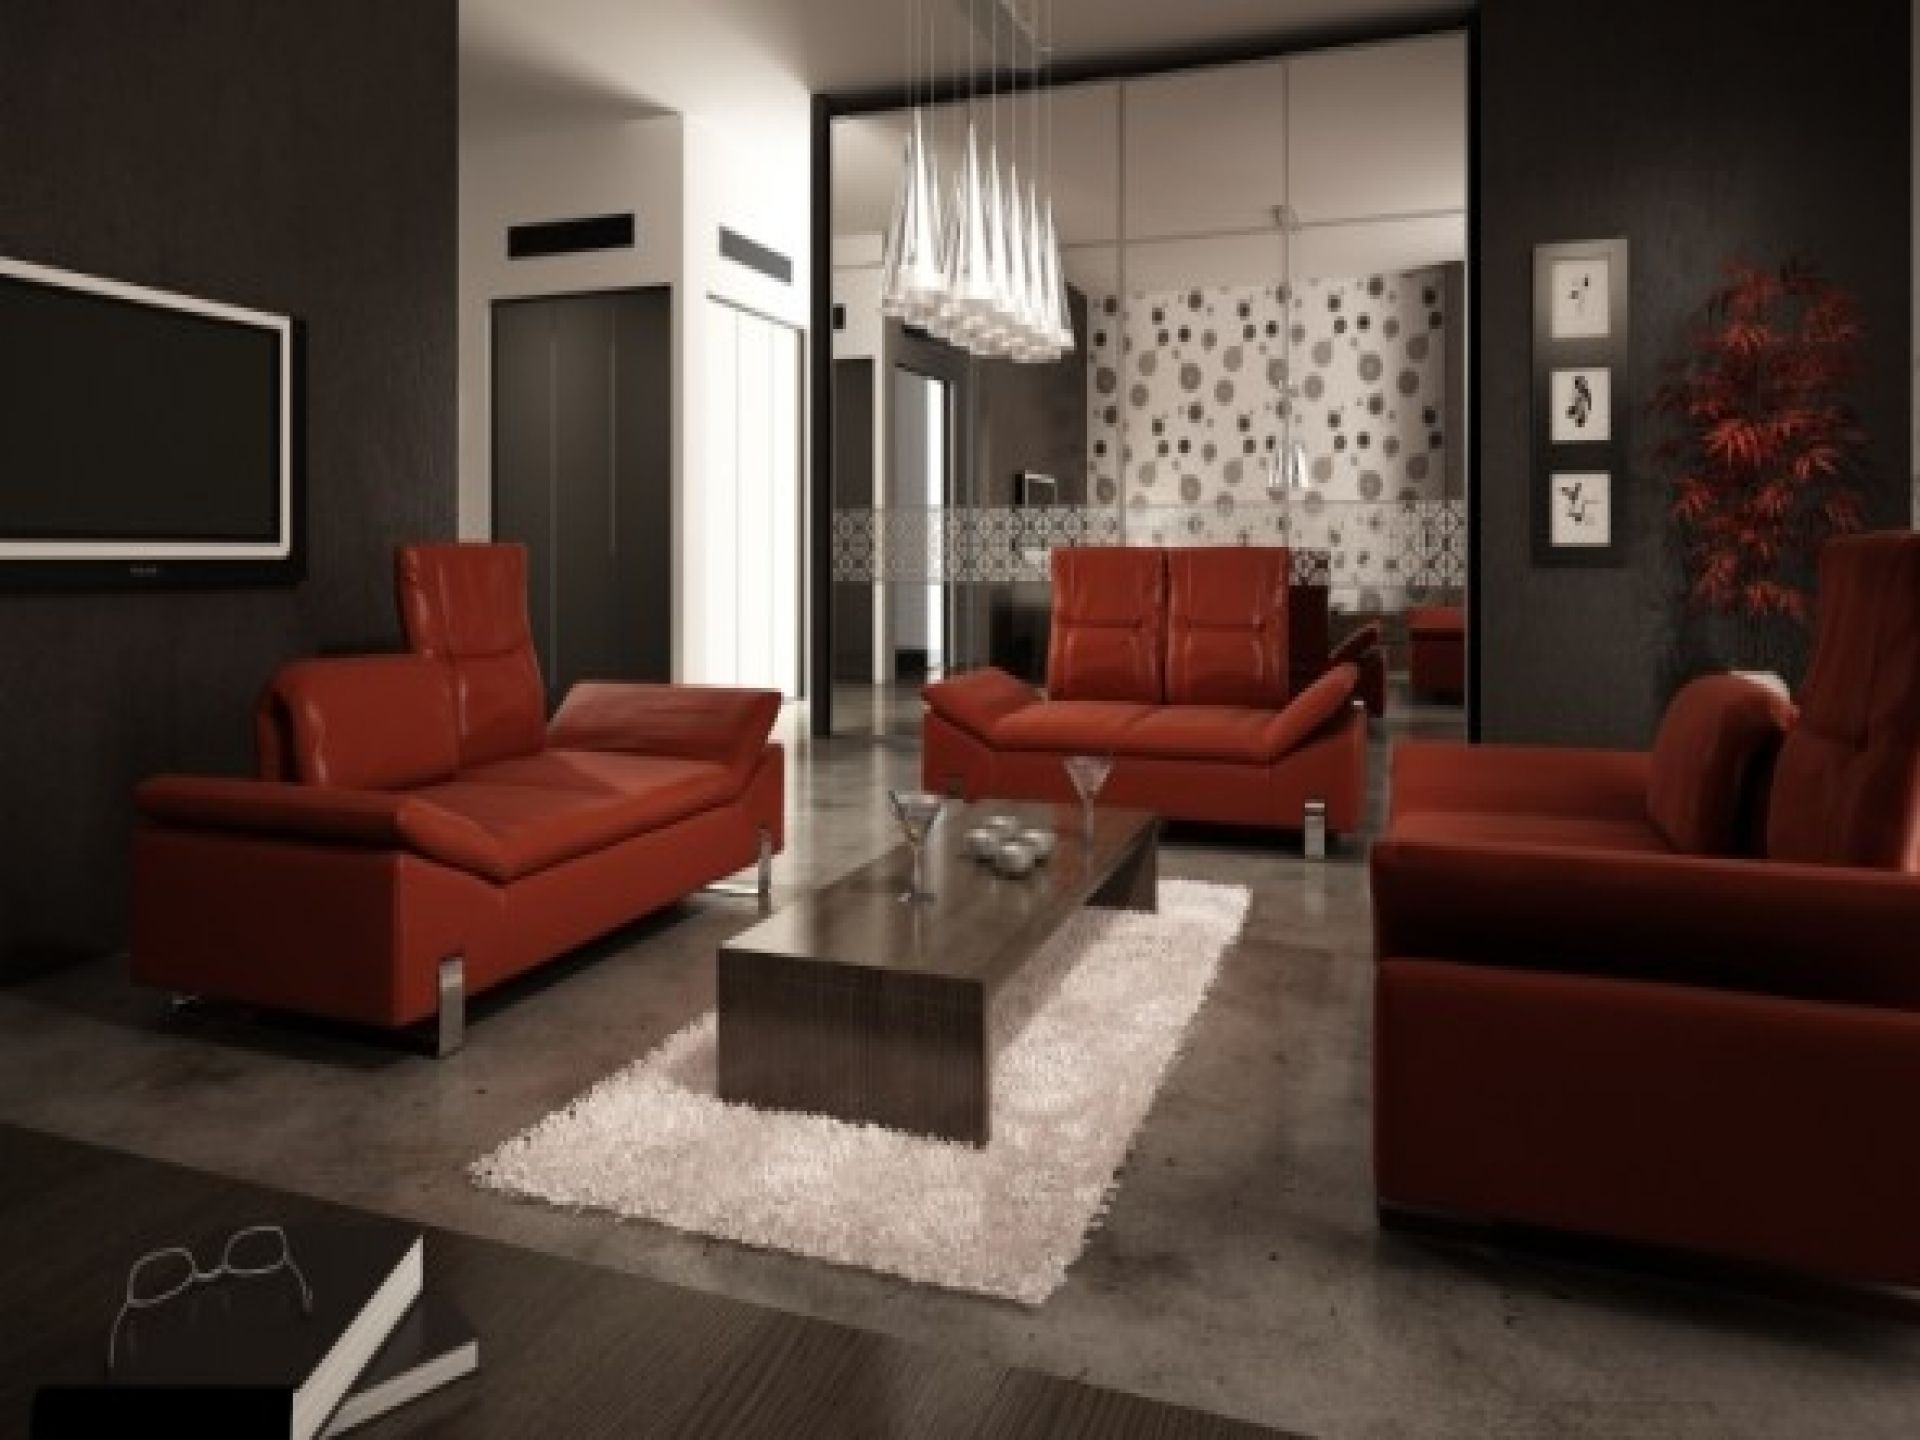 Living Room Decor With Red Sofa red leather sofa living room ideas - google search | joel's apt